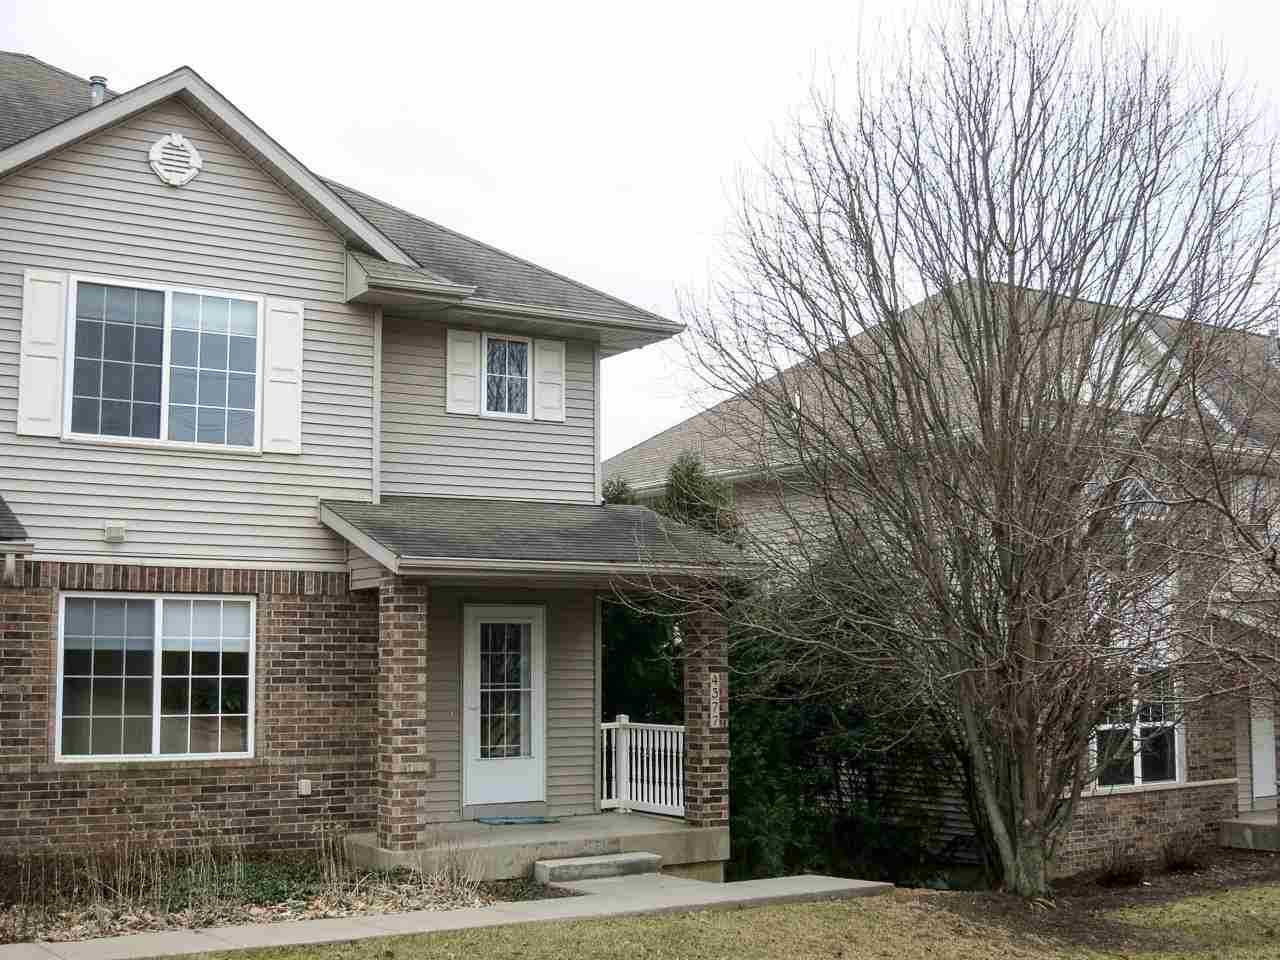 4377 E Court St, Iowa City, IA 52245